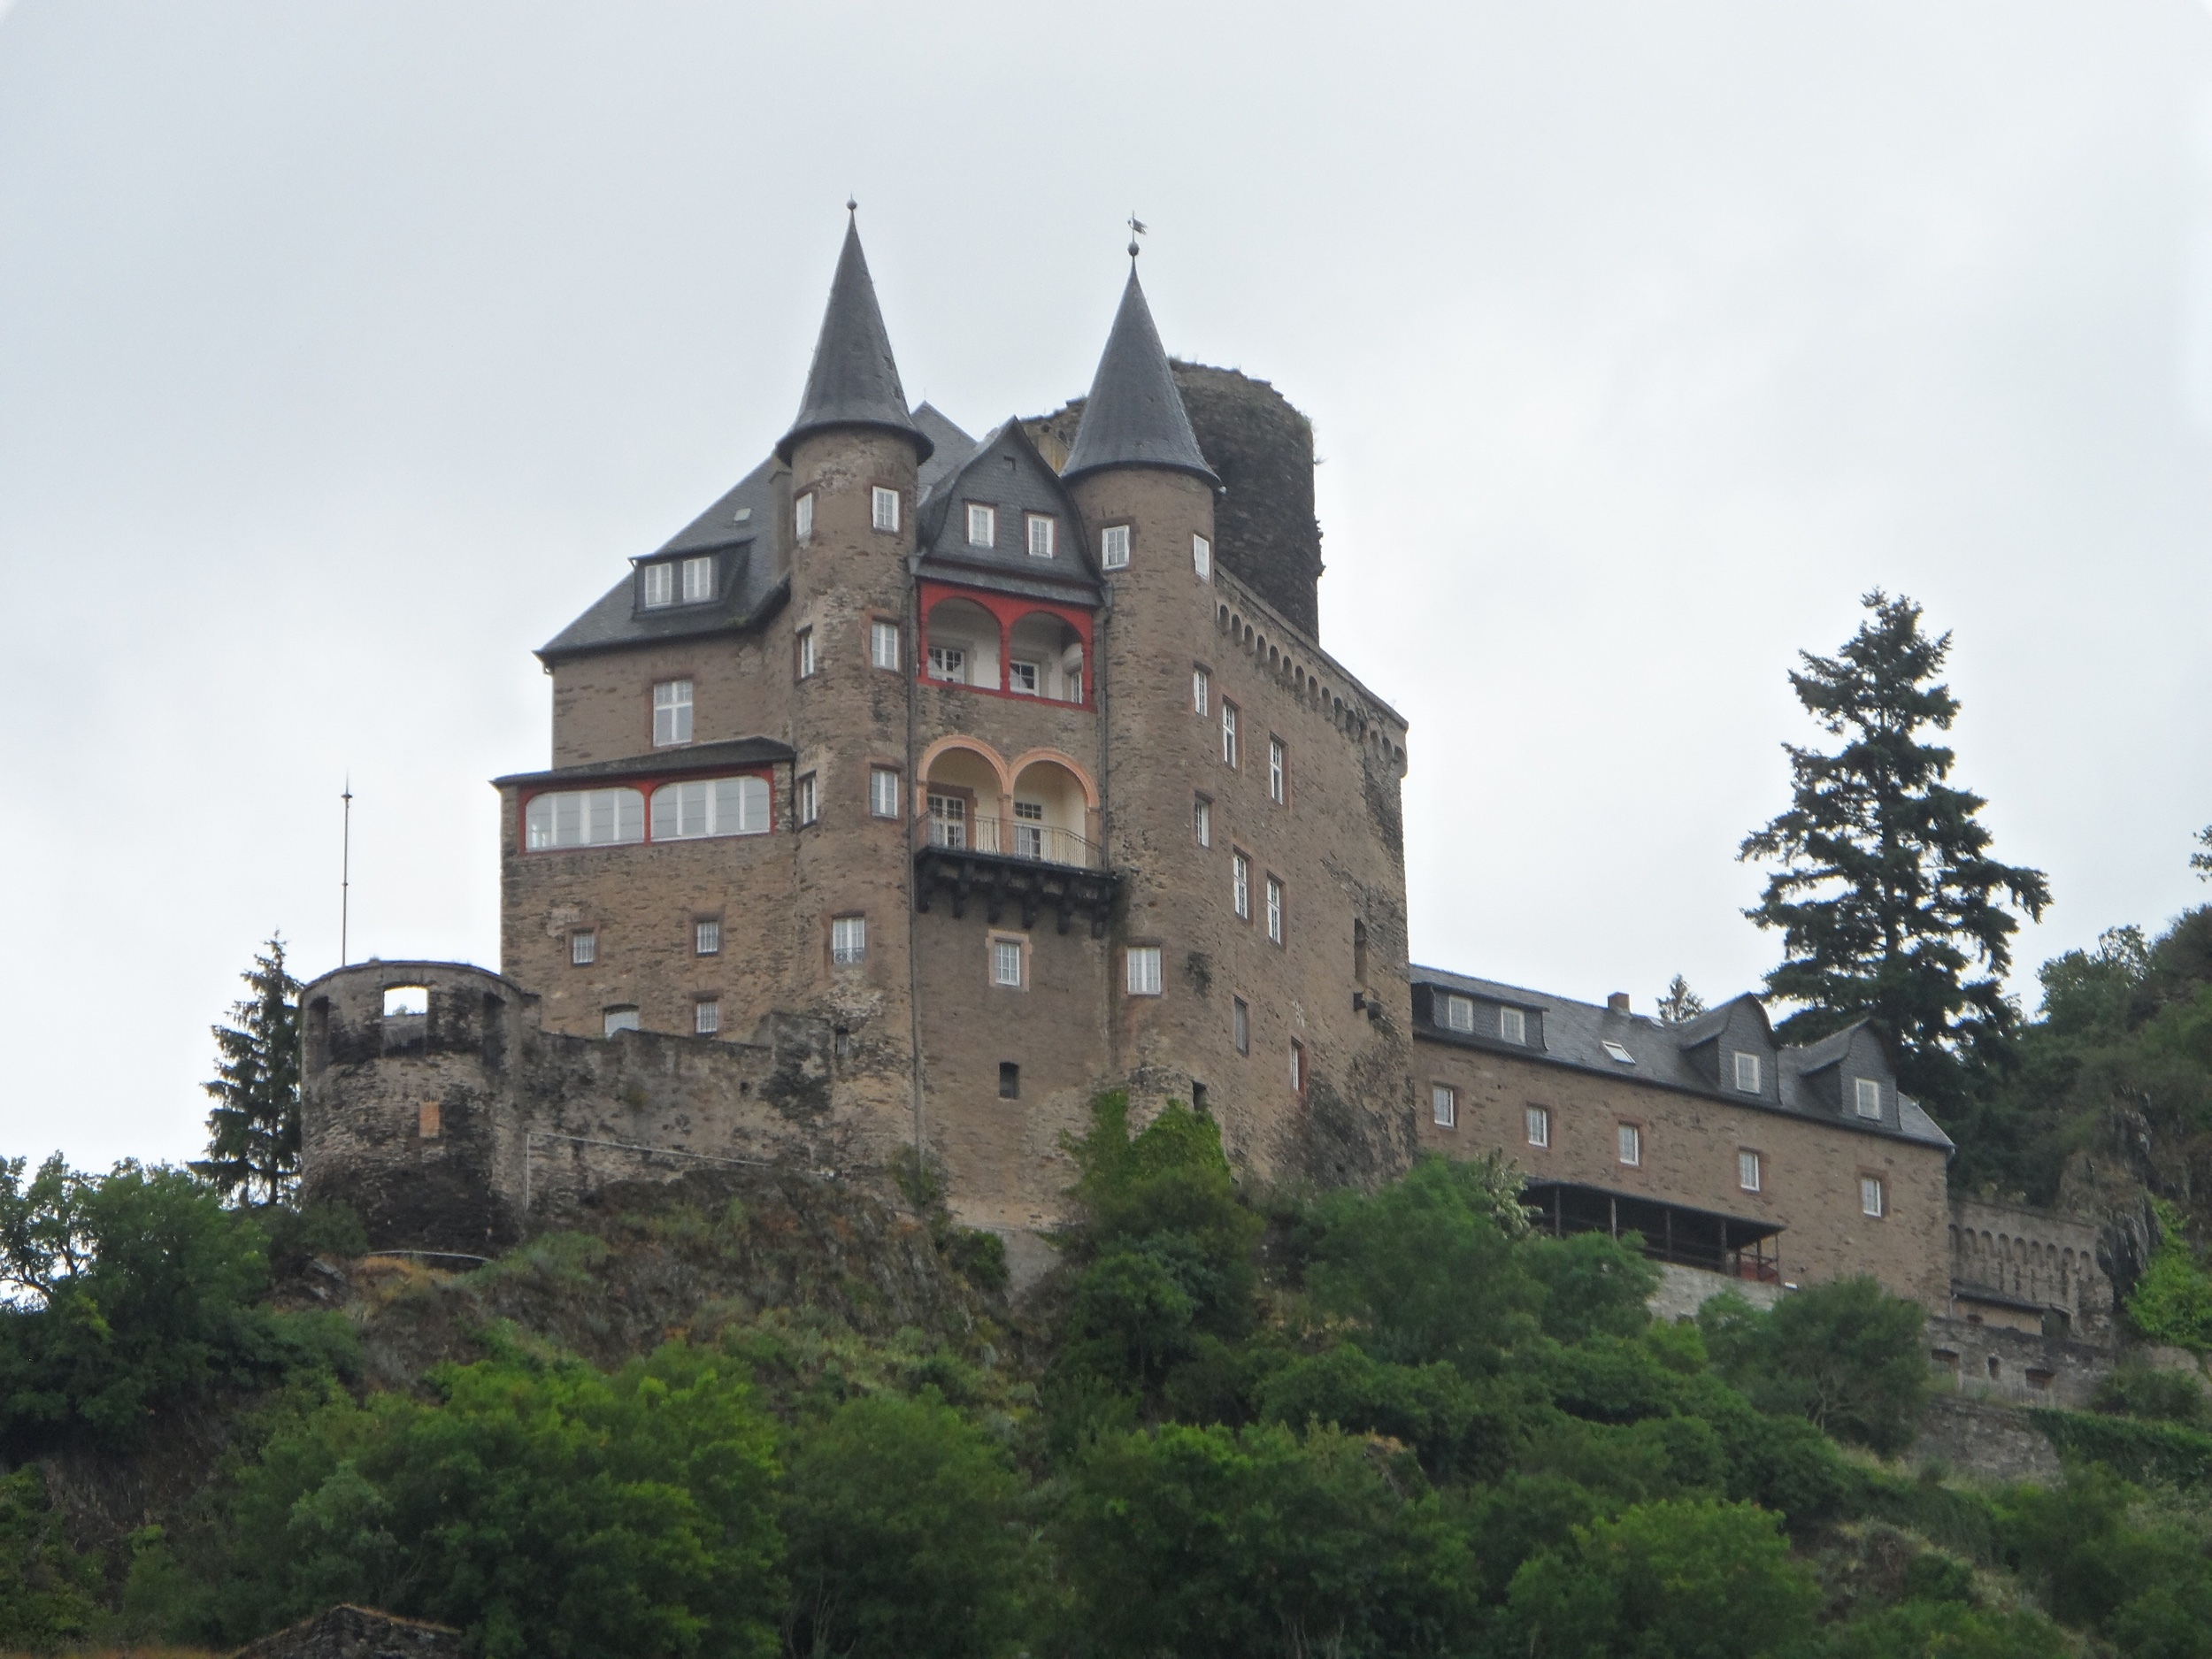 Rhine River Gorge Castle 2019–I can add this photo to my cruise App